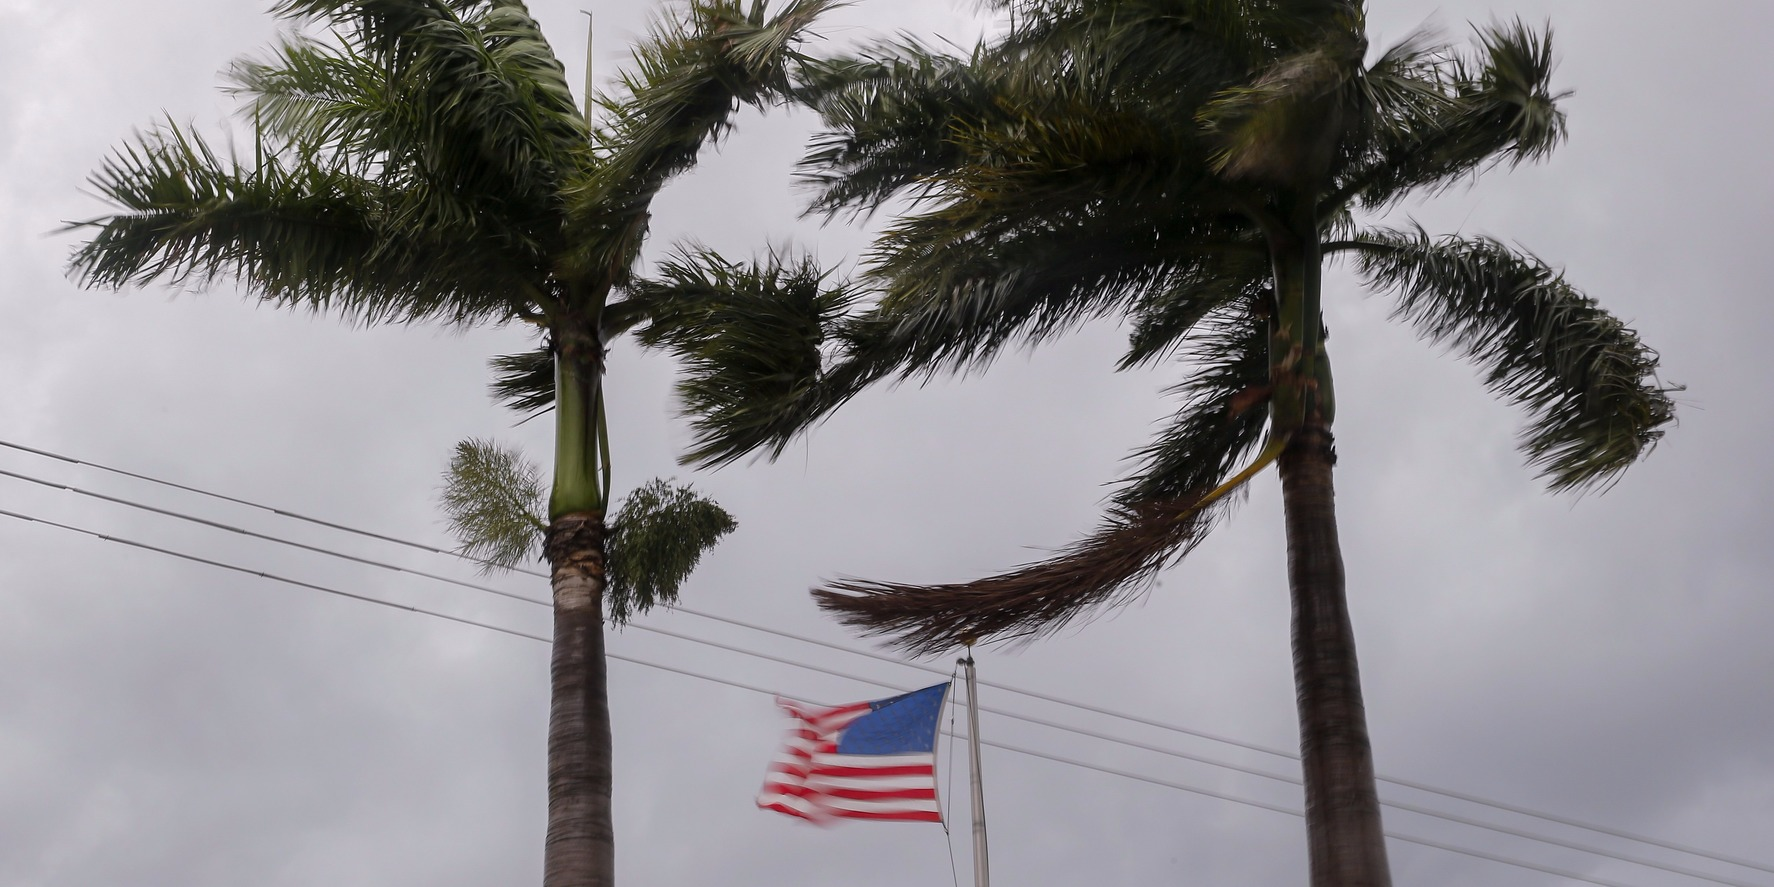 epa06194412 Palm trees and a US flag flutter in the increasing wind as the weather conditions deteriorate from Hurricane Irma in Florida City, Florida, USA, 09 September 2017. Many areas are under mandatory evacuation orders as Irma approaches Florida.  EPA/ERIK S. LESSER